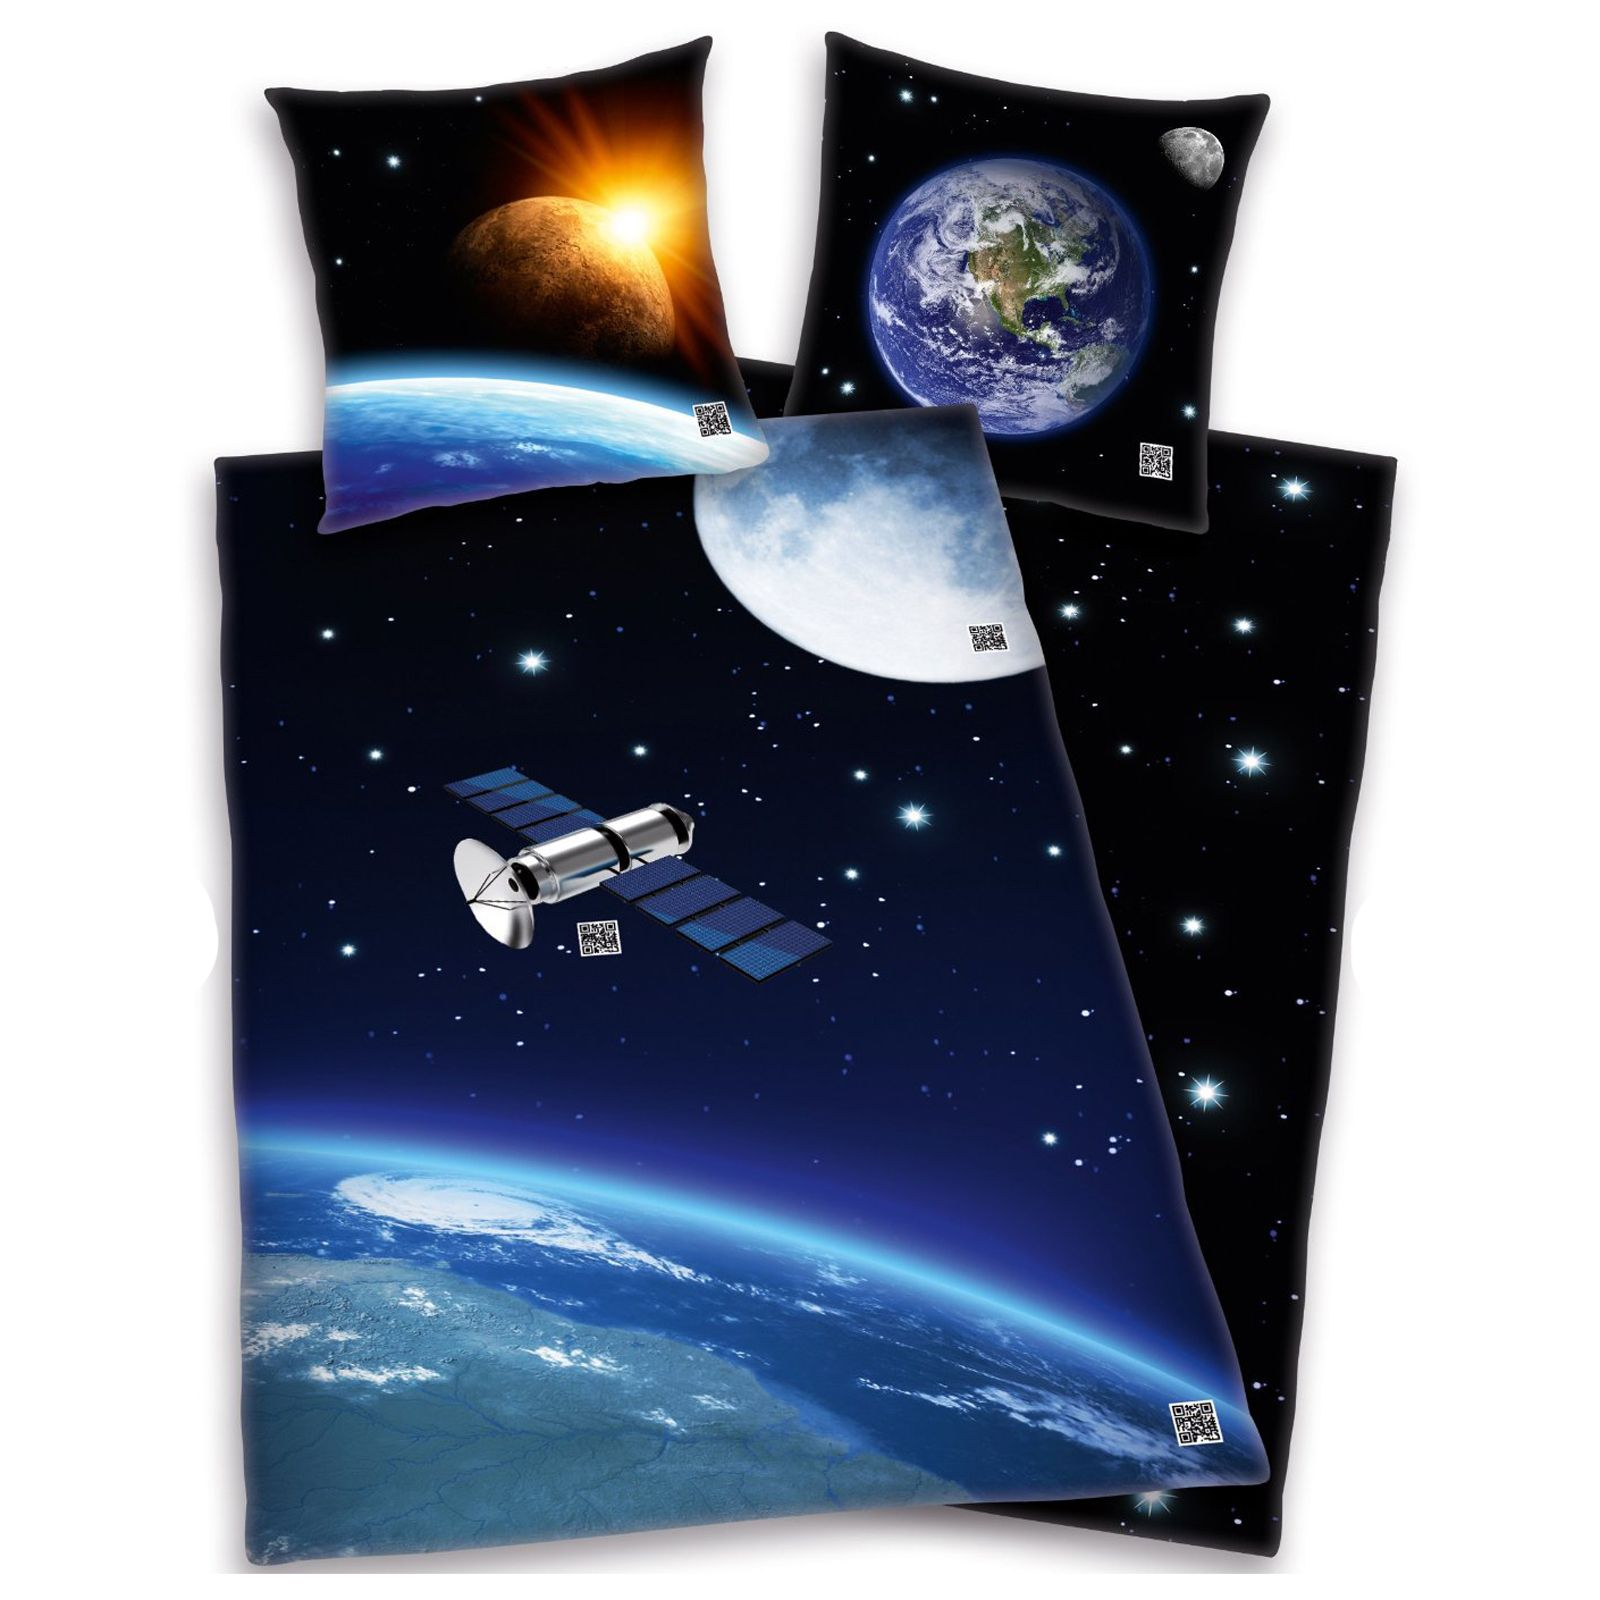 Solar System Bedroom : ... OUTER SPACE SATELLITE DUVET COVER NEW SOLAR SYSTEM BEDDING 100% COTTON